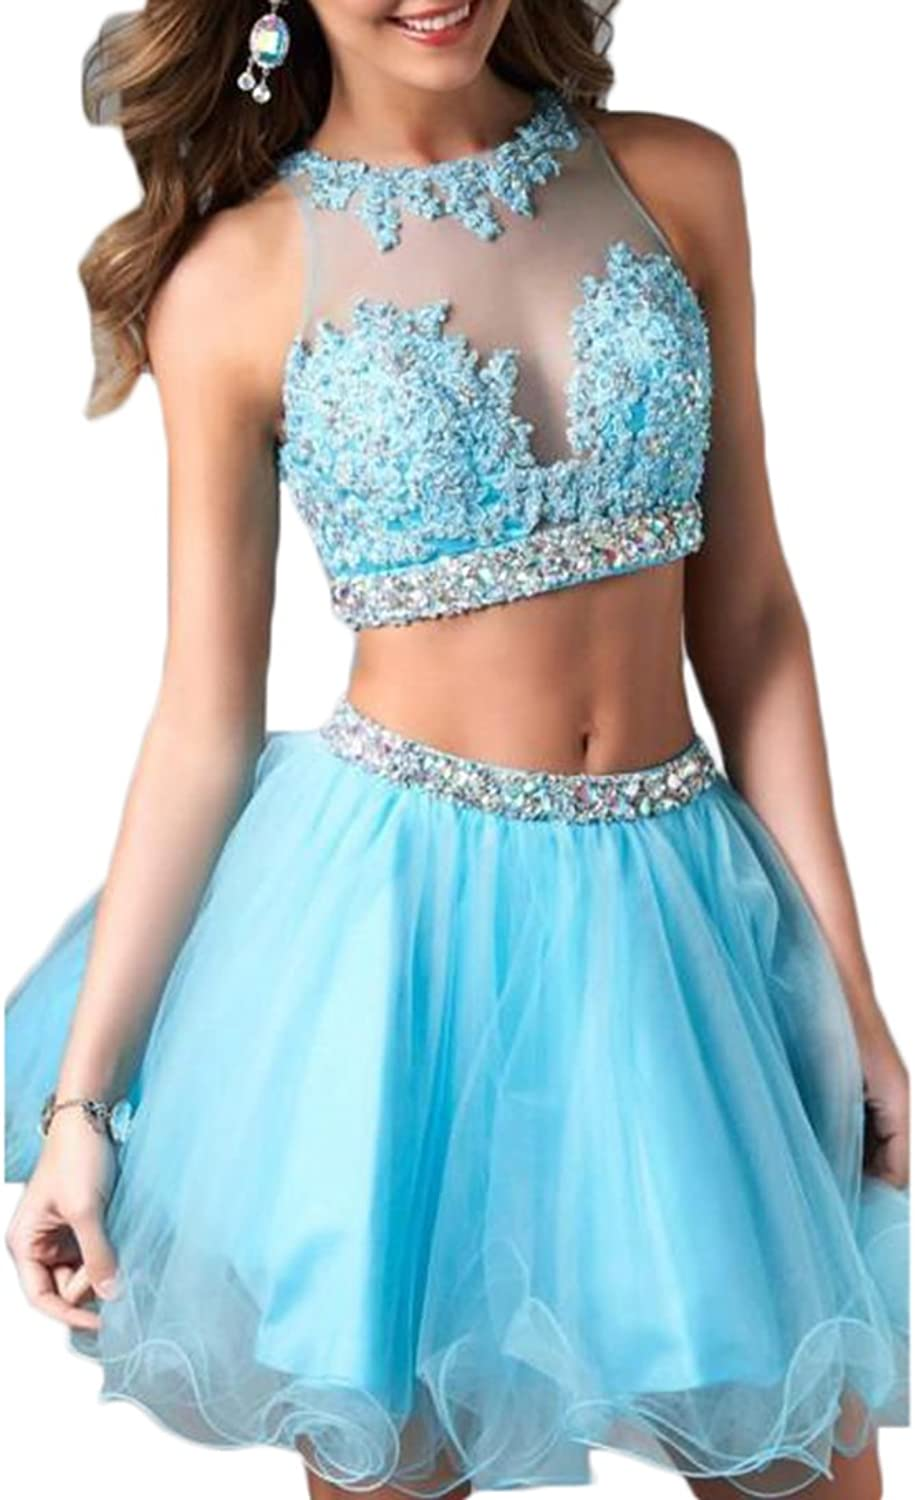 Alilith.Z Sexy Illusion Appliques Beaded Crystal 2 Piece Short Homecoming Prom Dresses Formal Evening Party Gowns for Women